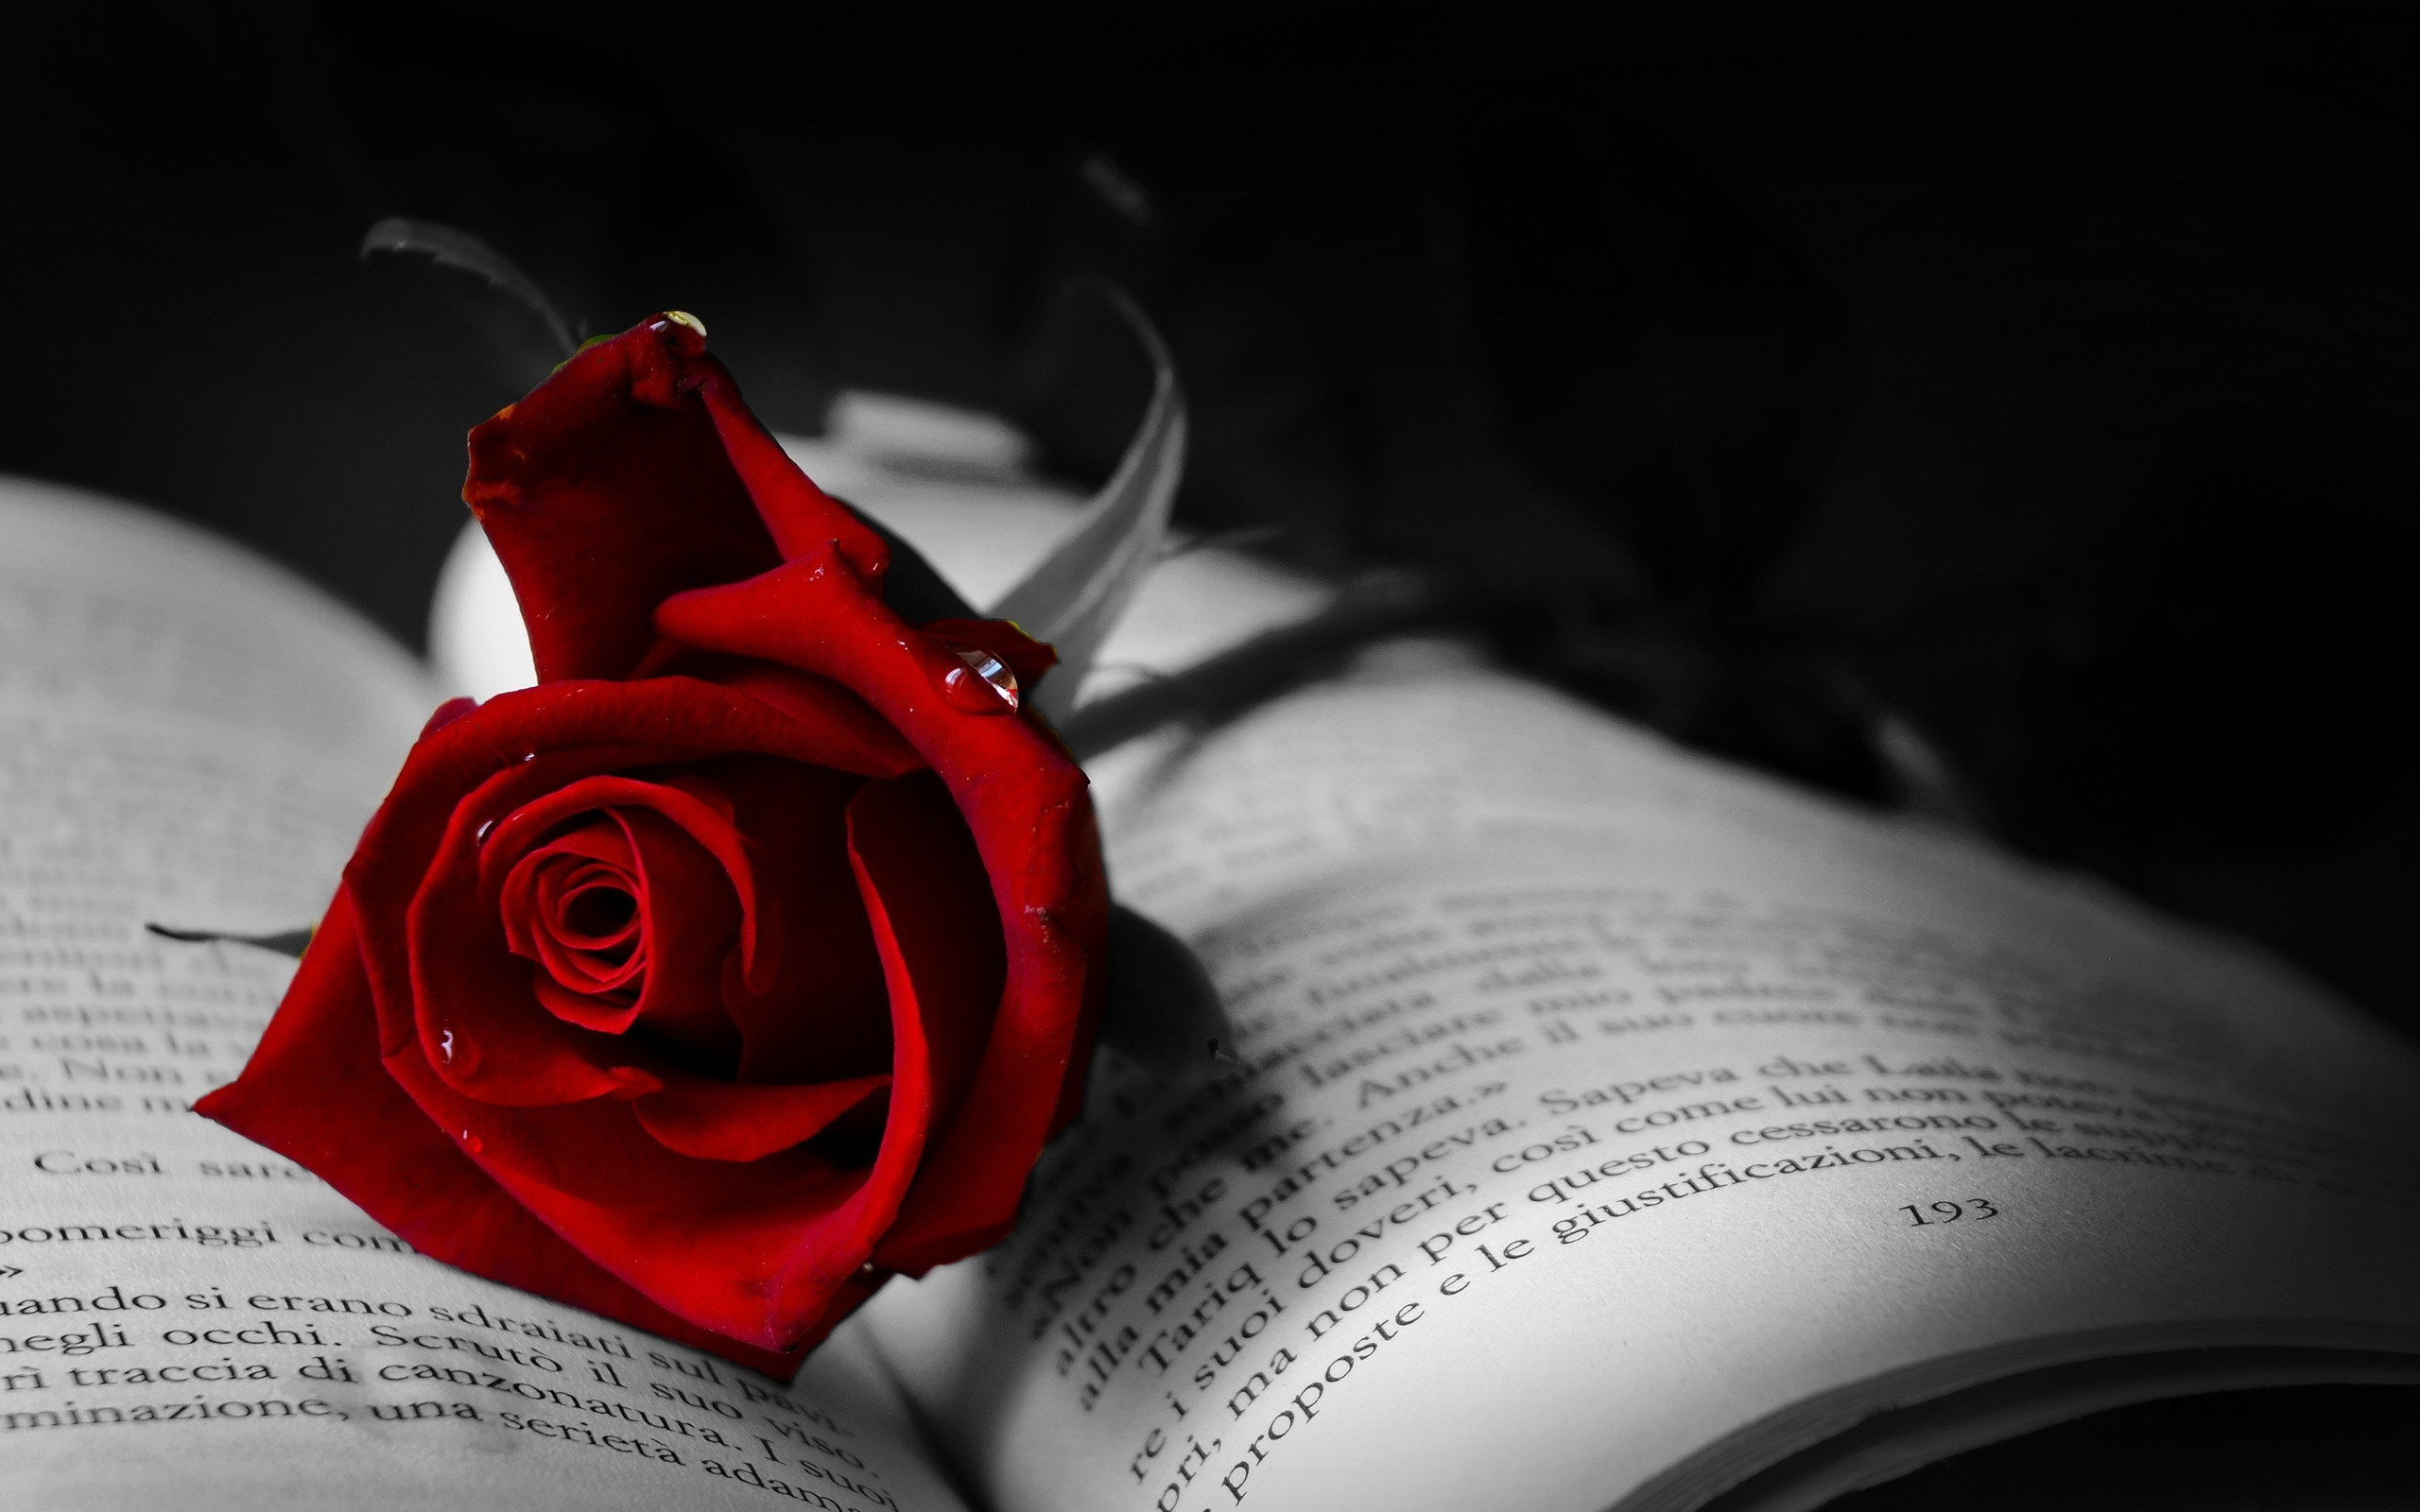 Book with red rose wallpaper